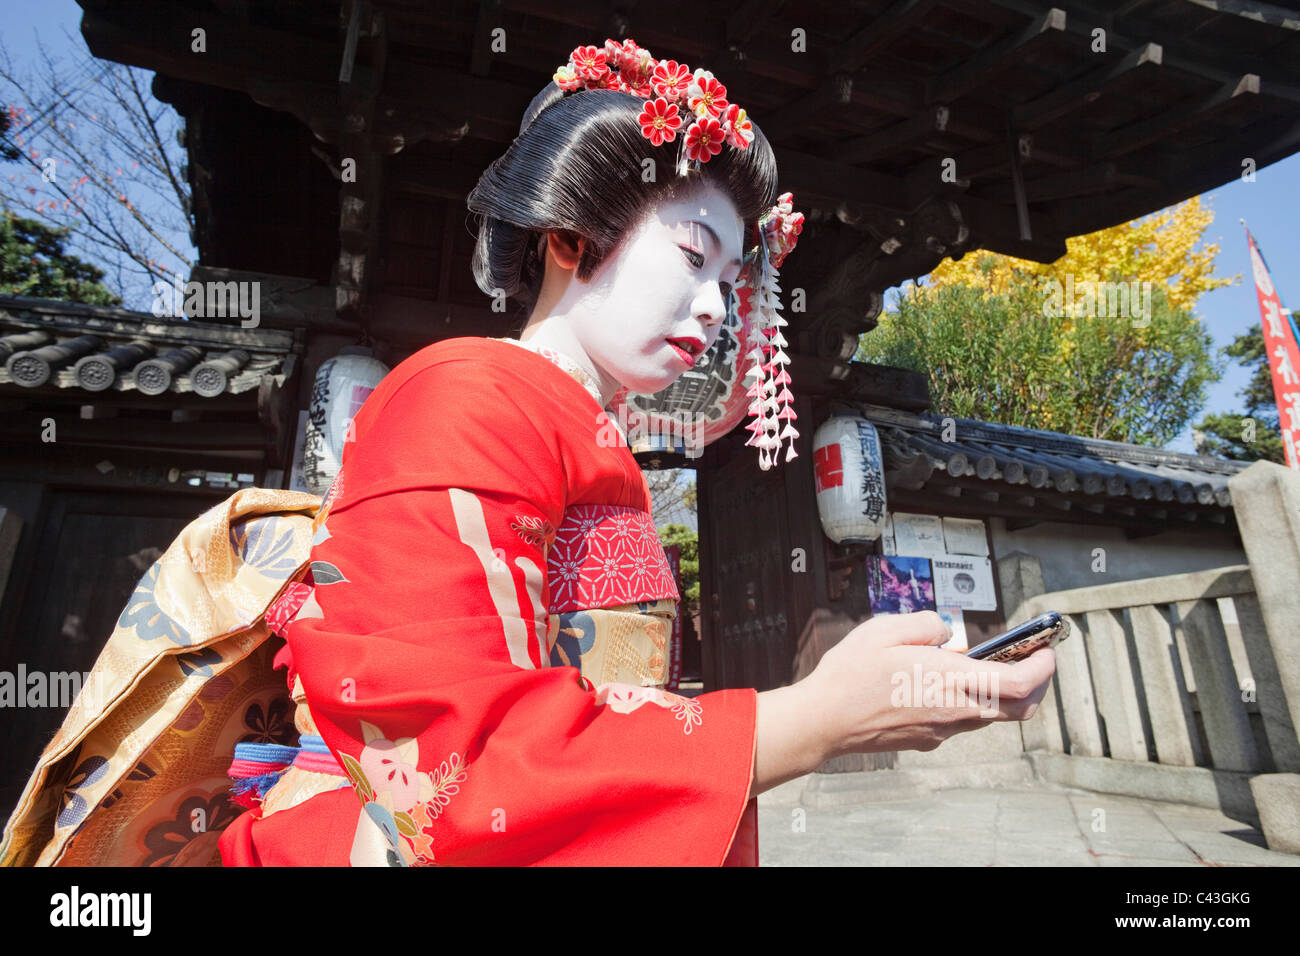 Asia, Japan, Honshu, Kyoto, Female, Woman, Women, Japanese Woman, Japanese Women, Asian Woman, Asian Women, Maiko, - Stock Image